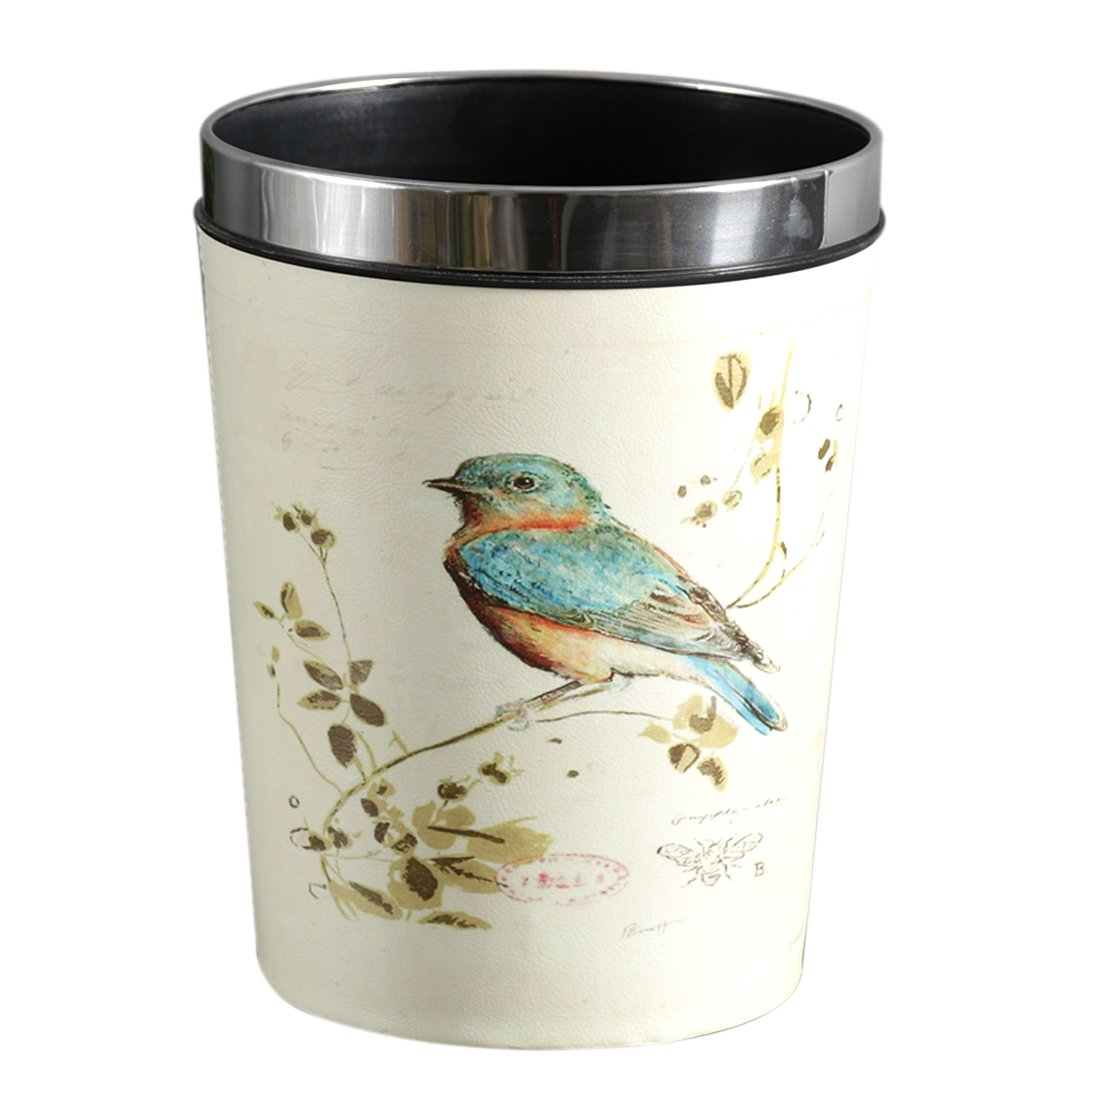 mingcheng 12L Height 31.5CM Waterproof Garbage Can European Style Waste Container Trash Bird Pattern